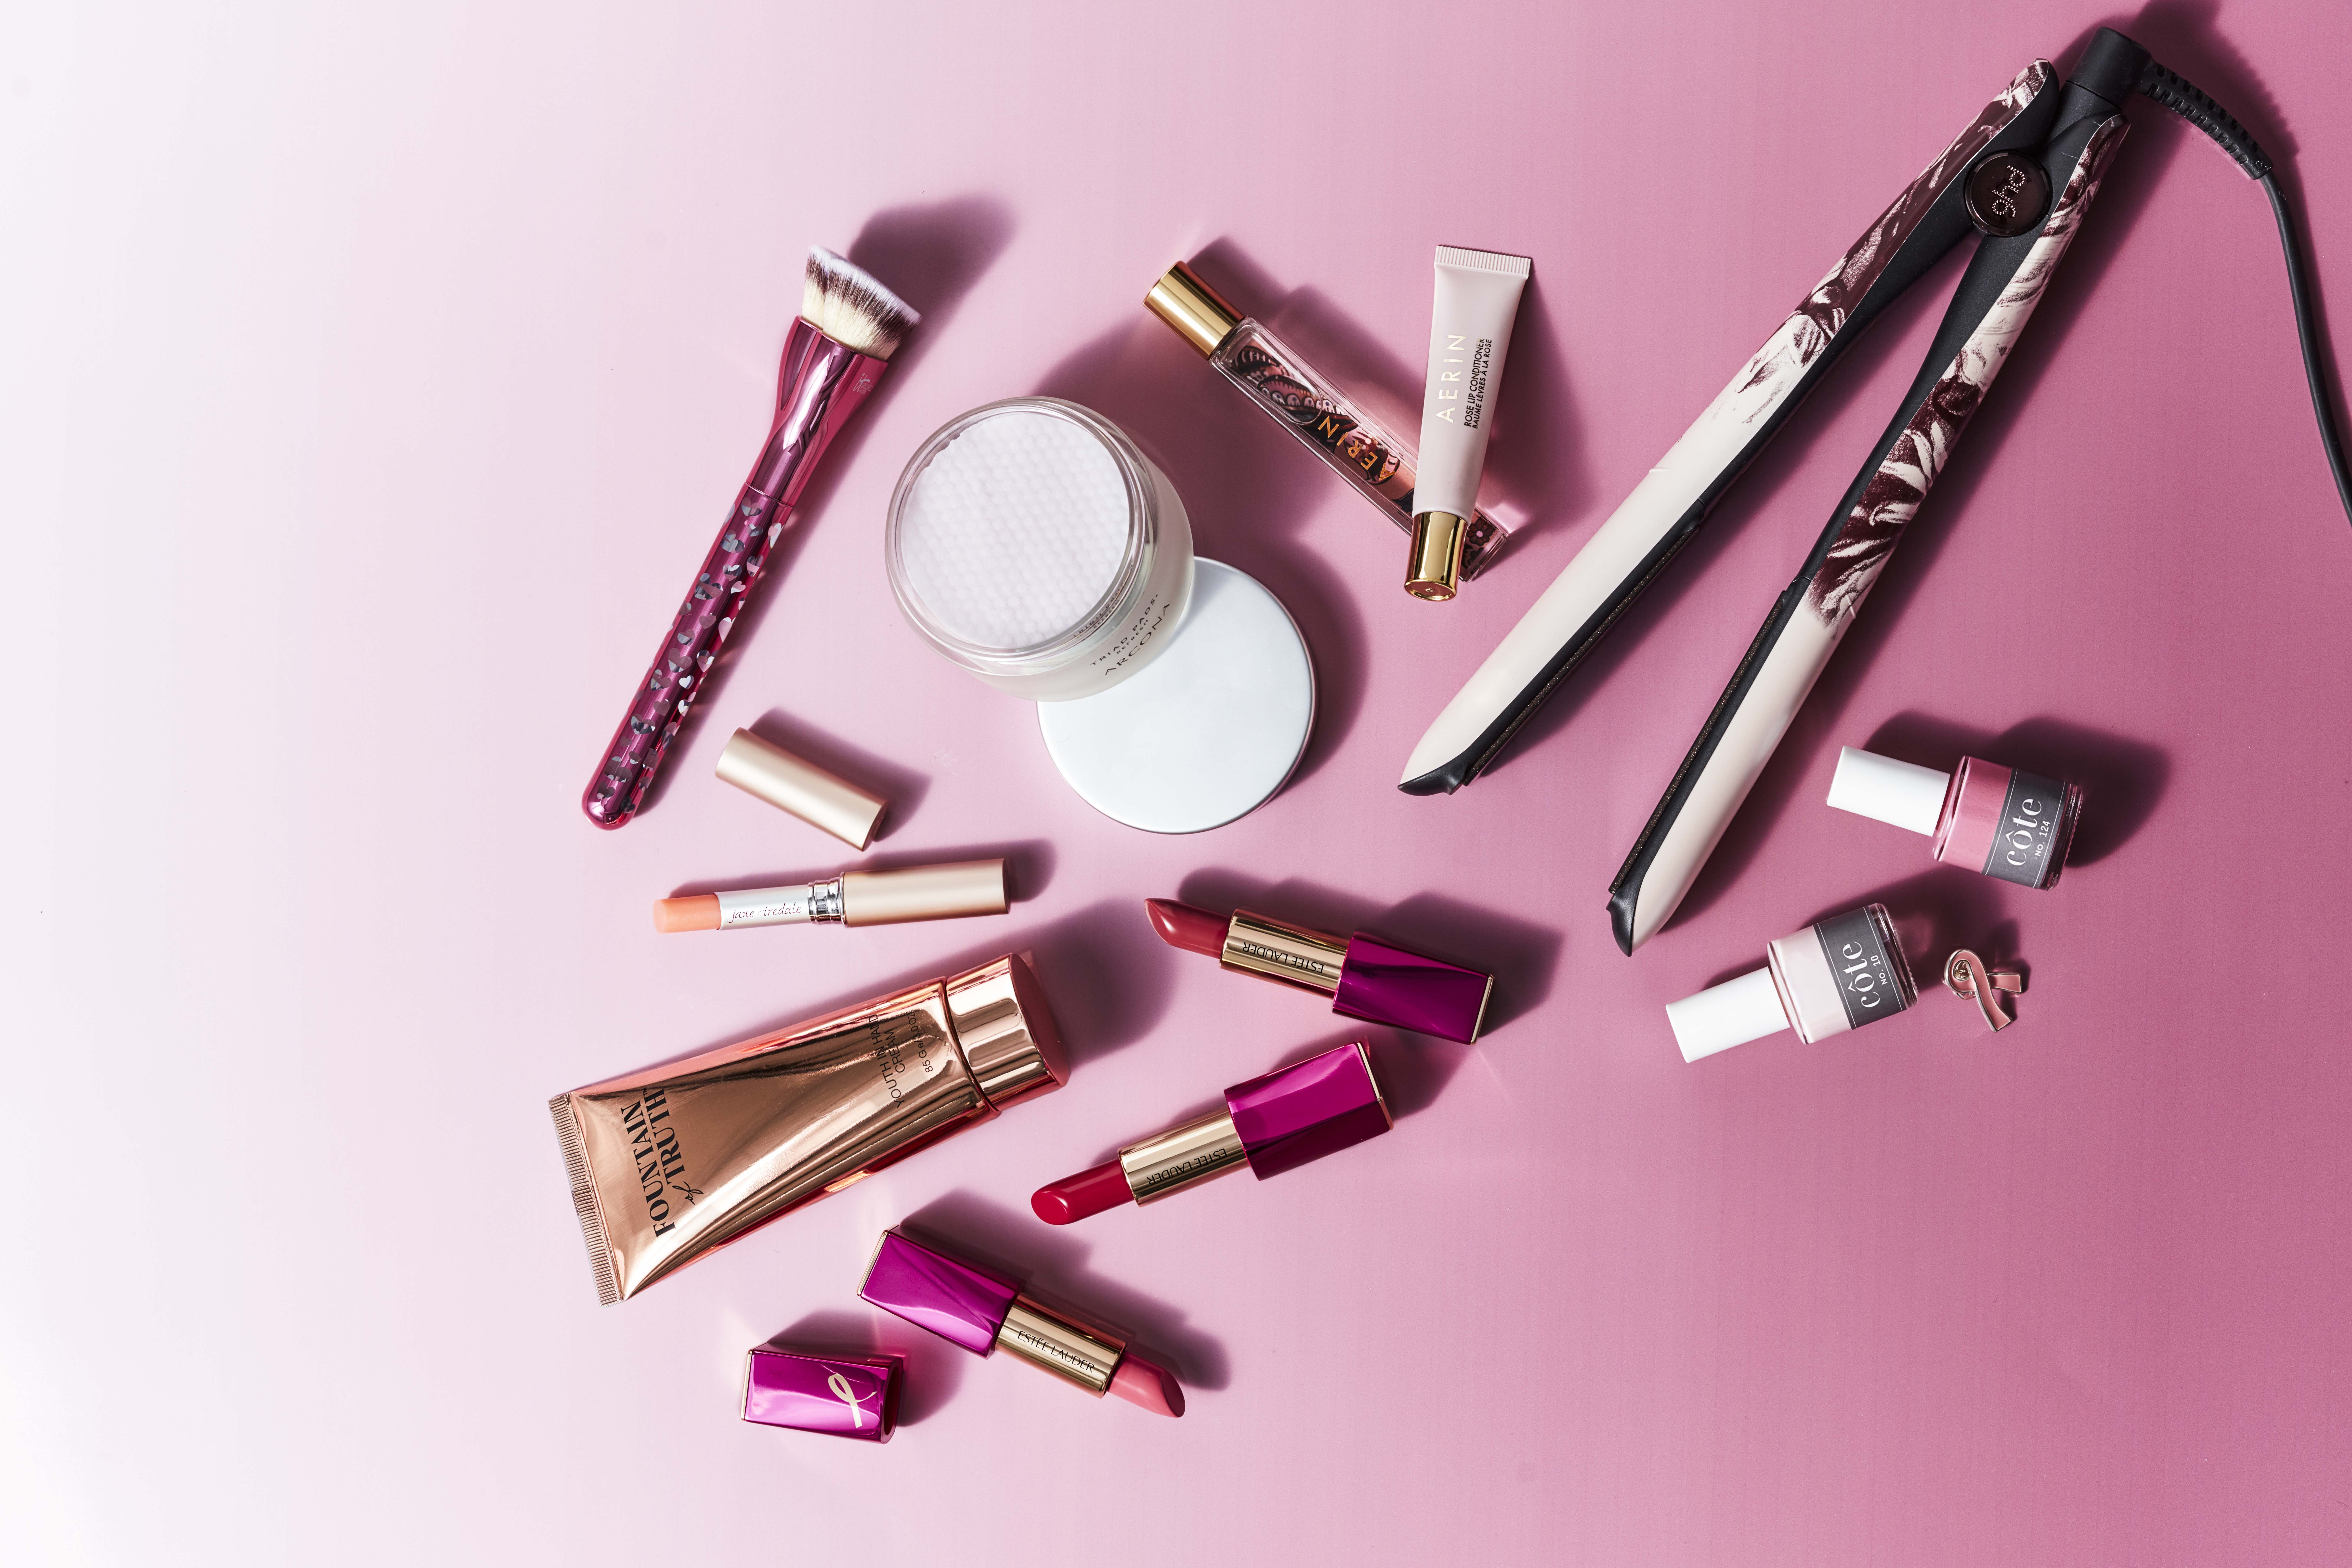 8 Beauty Products to Buy This Month to Benefit Breast Cancer Charities